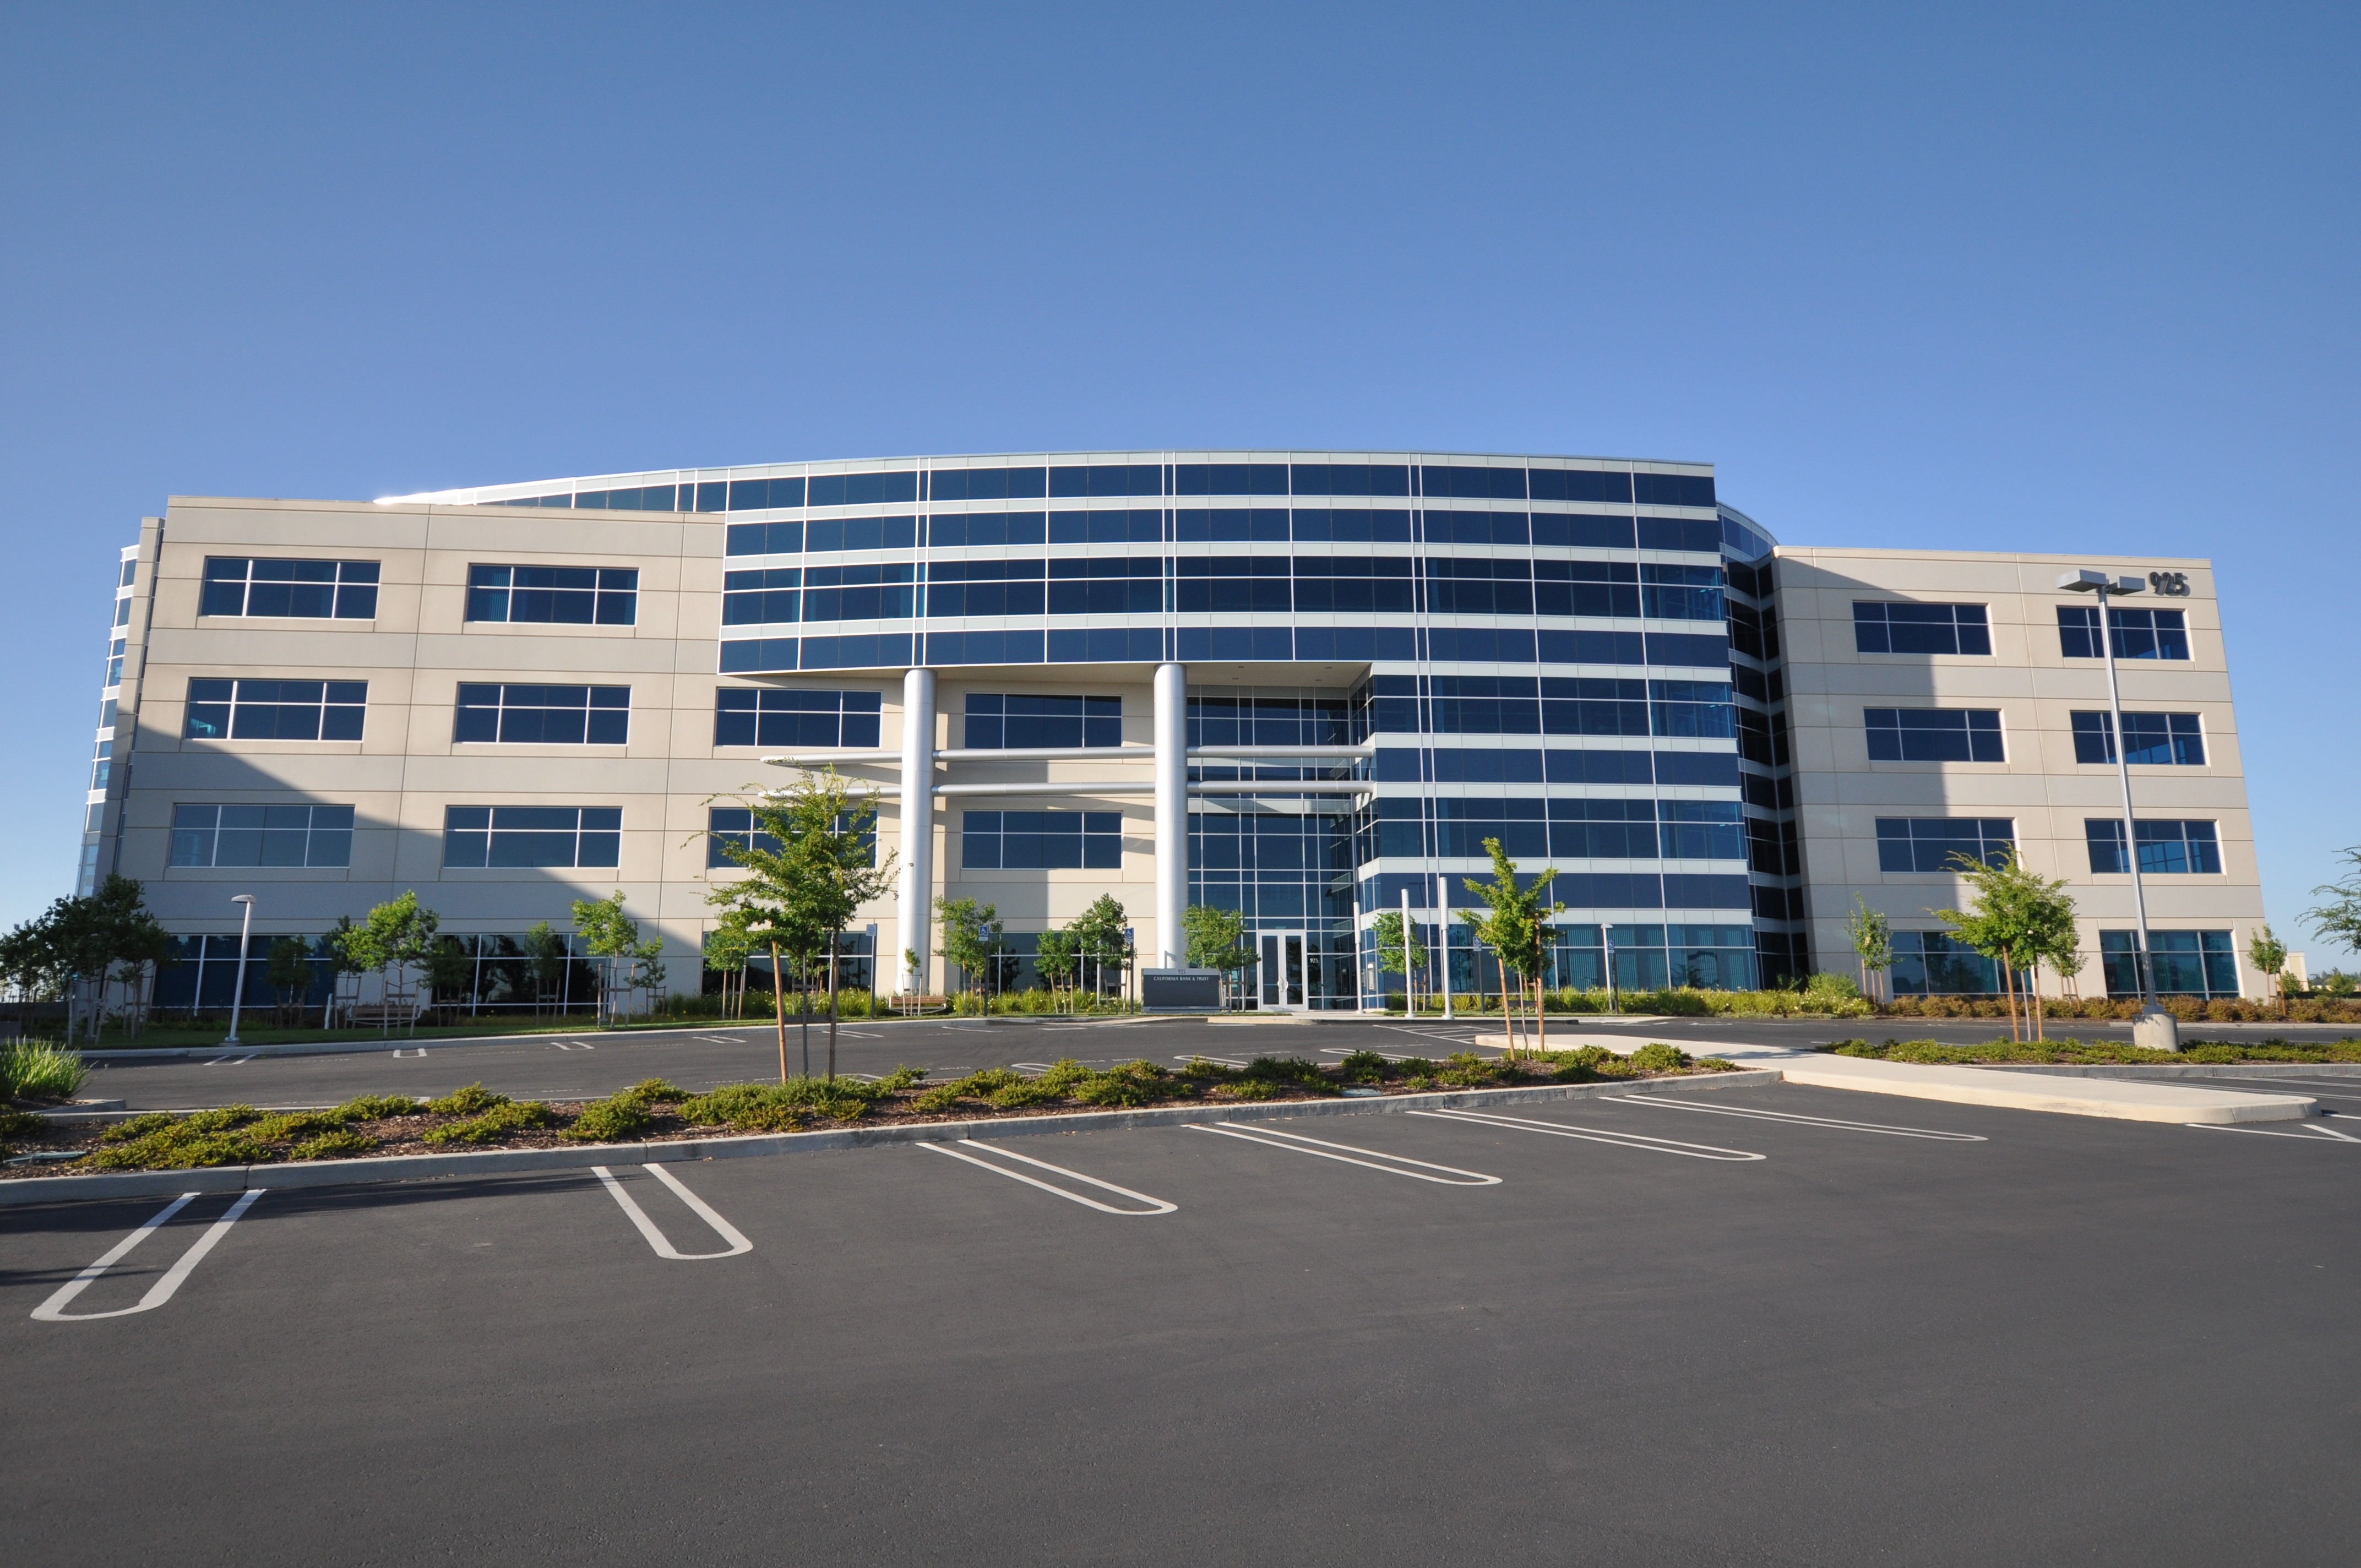 bigstock-Office-Building